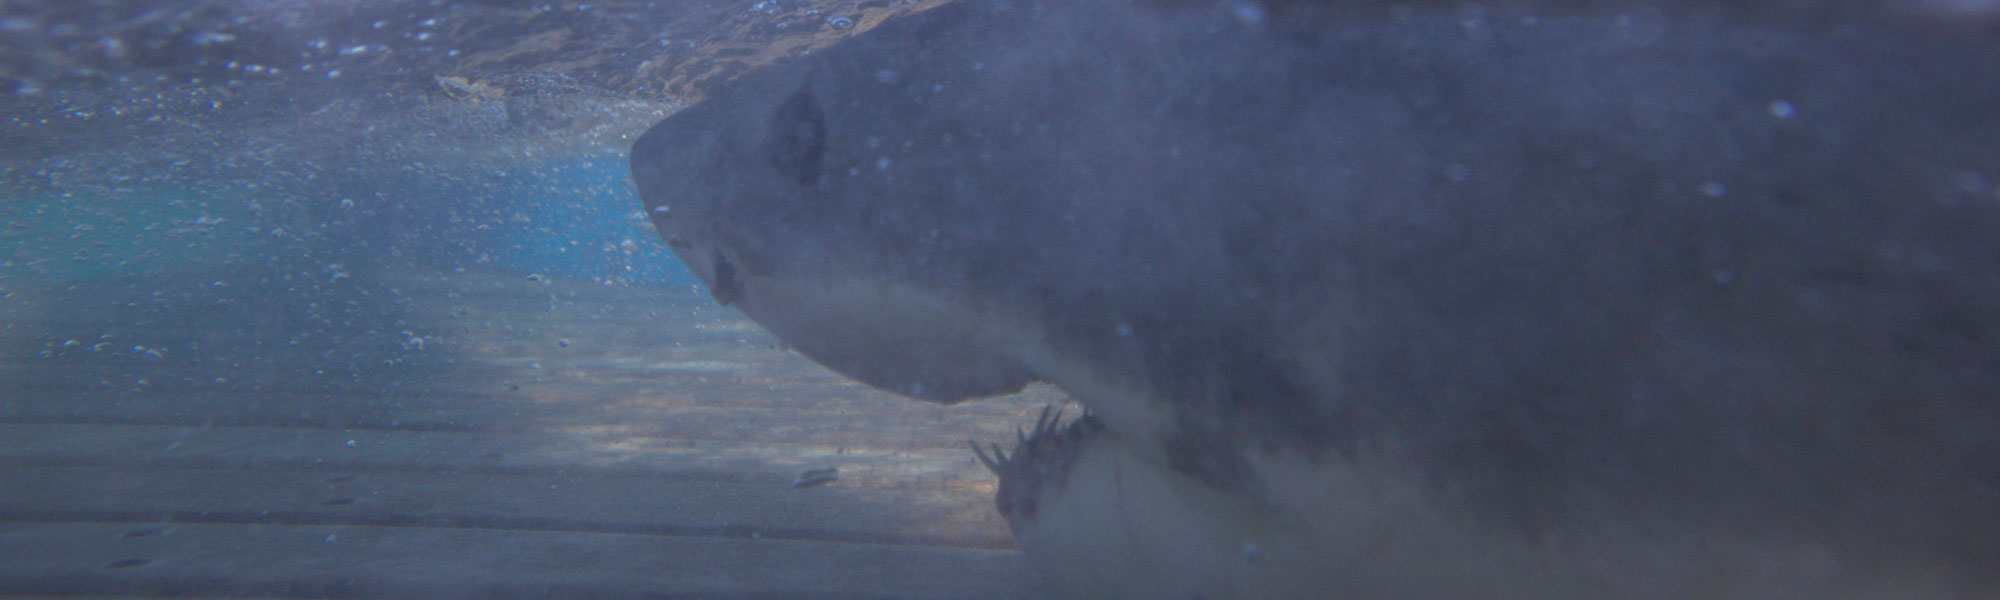 New Study Reveals Poison Flowing Through White Sharks' Veins